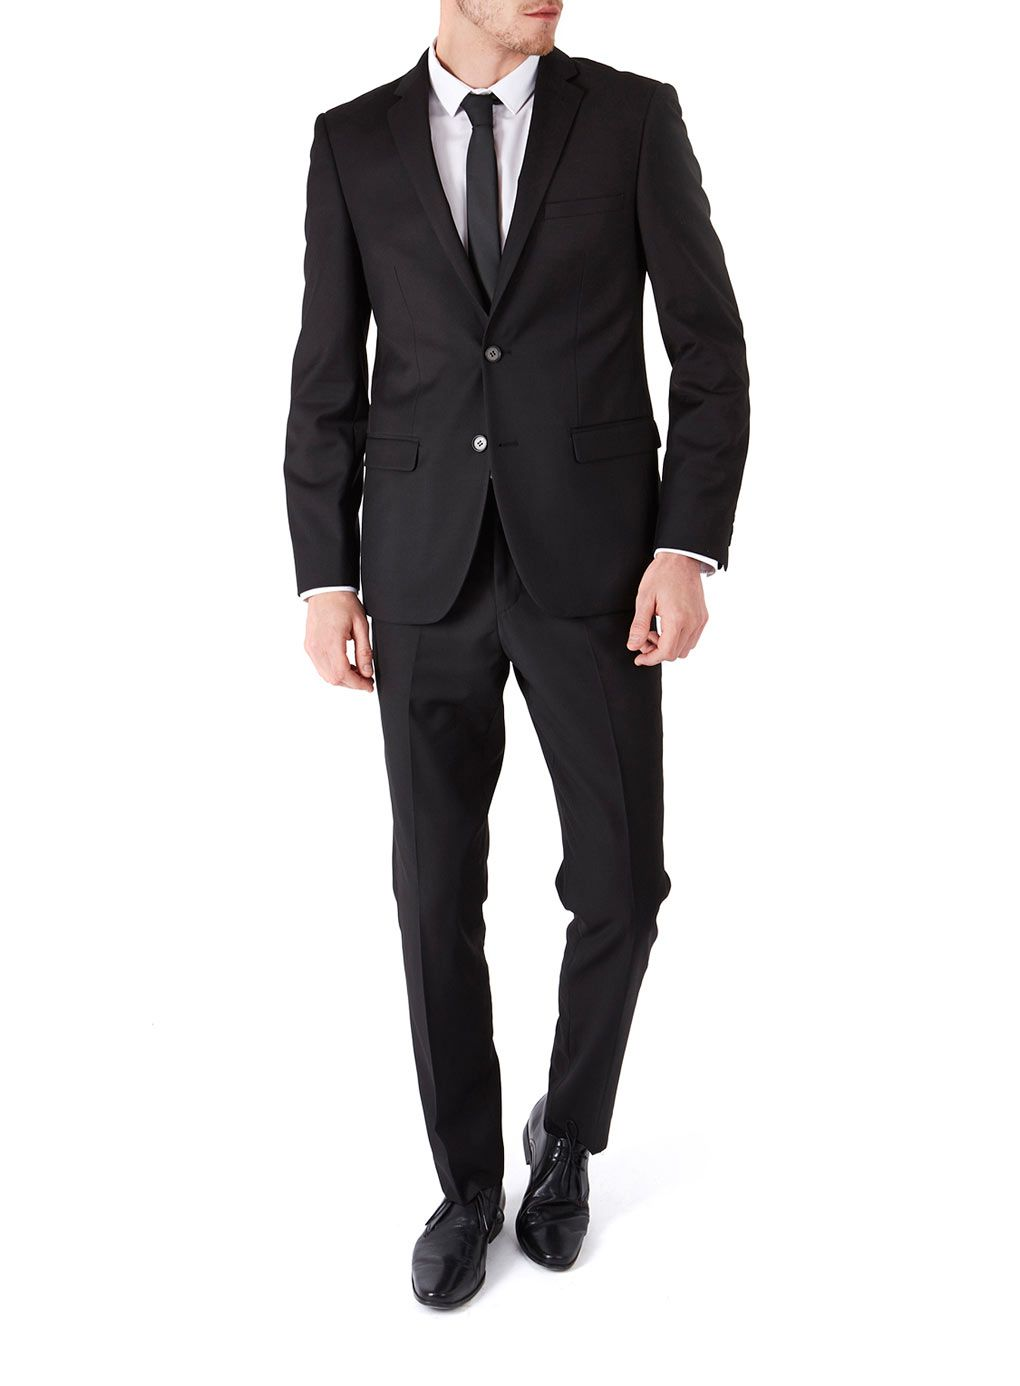 2 Piece Black Plain Slim Fit Suit | Beatles, 60s, 70s. | Pinterest ...